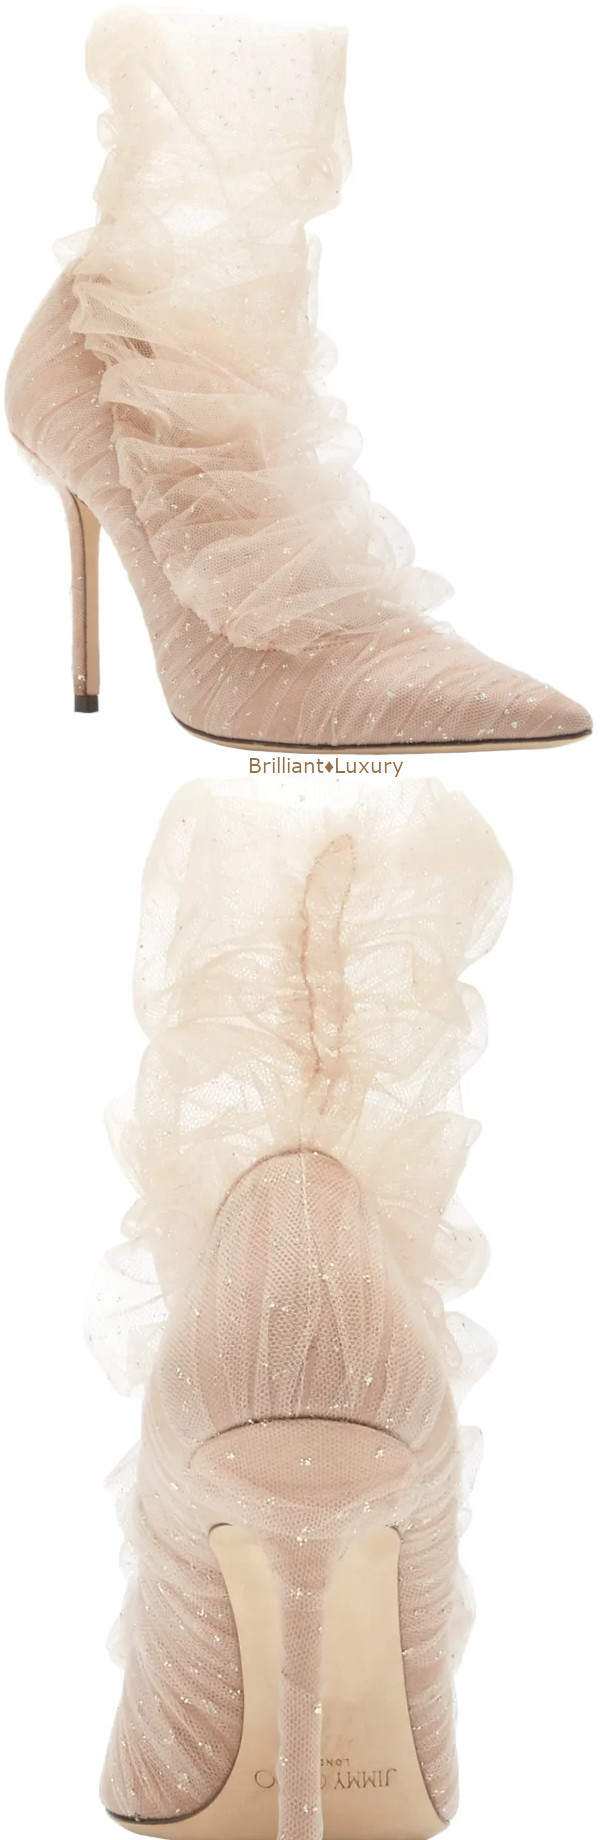 Jimmy Choo Lavish tulle-paneled elegant neutral suede pumps